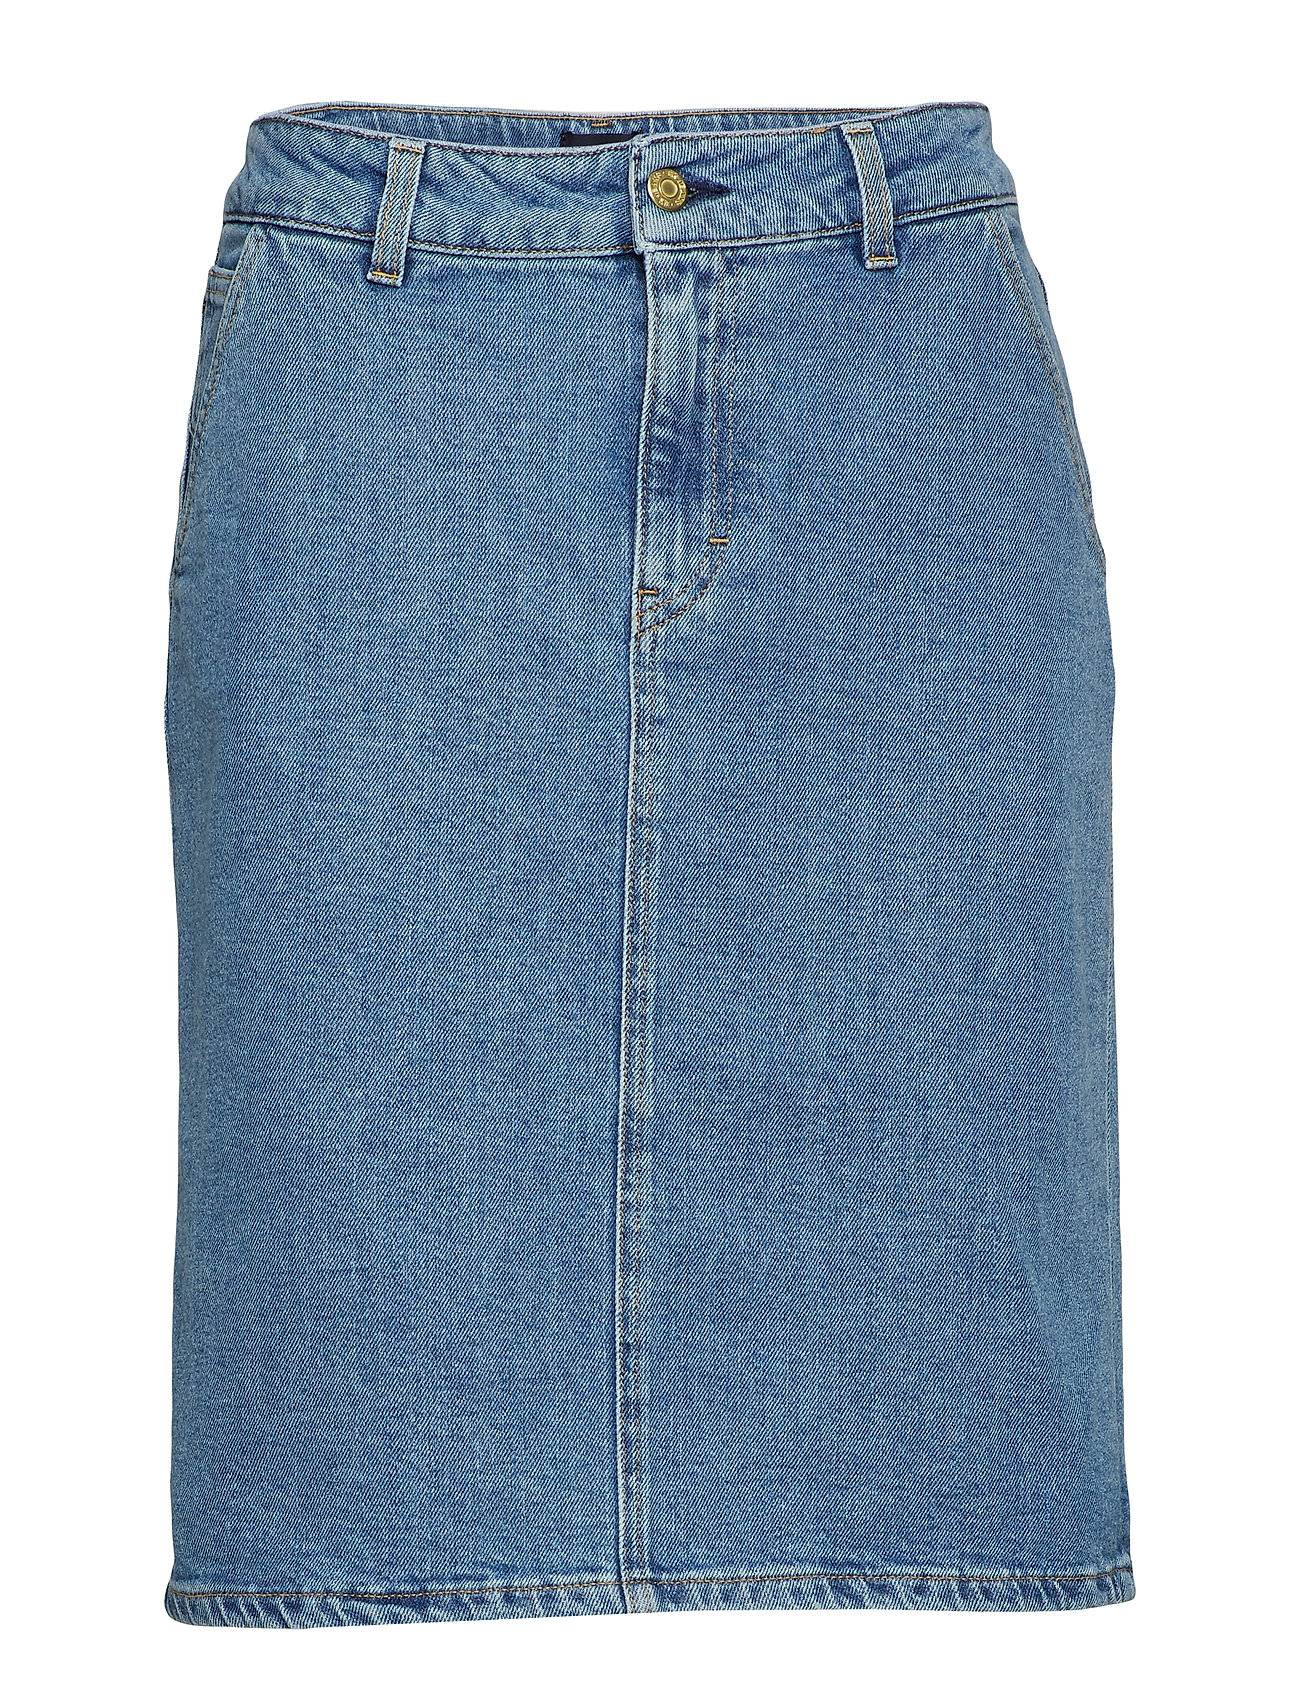 Filippa K Alicia Denim Skirt